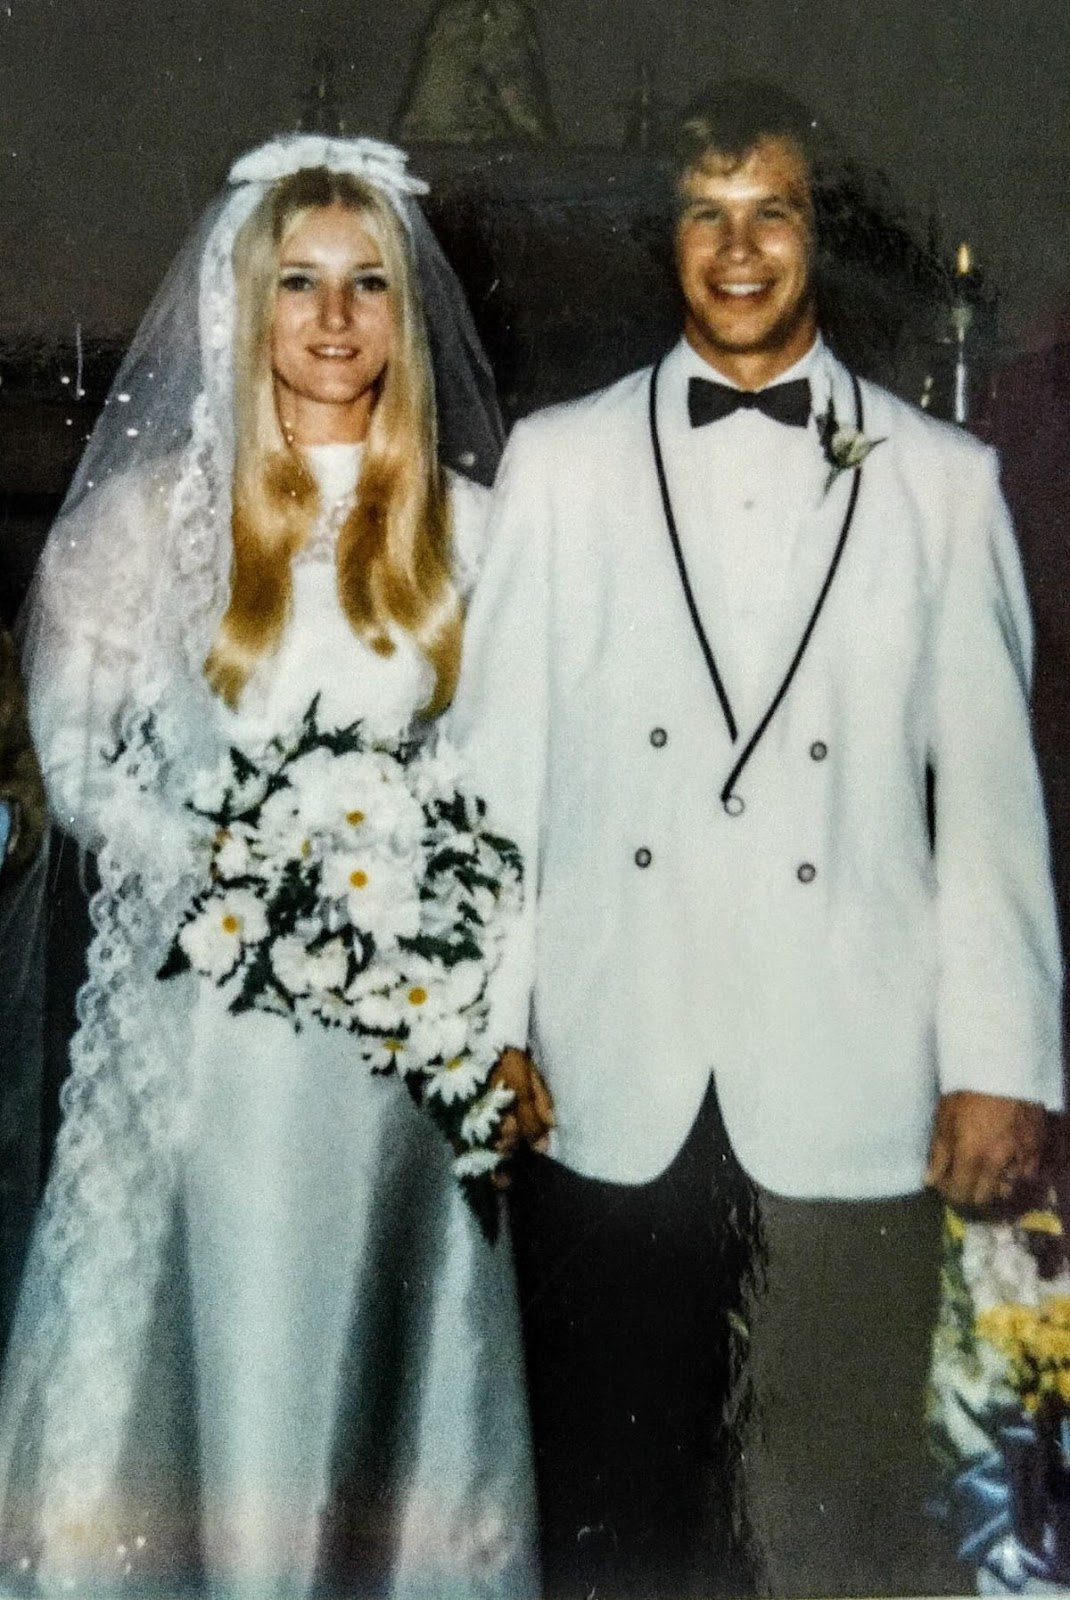 Fascinating Story of Nick and Bobbi Ercoline, the Couple in